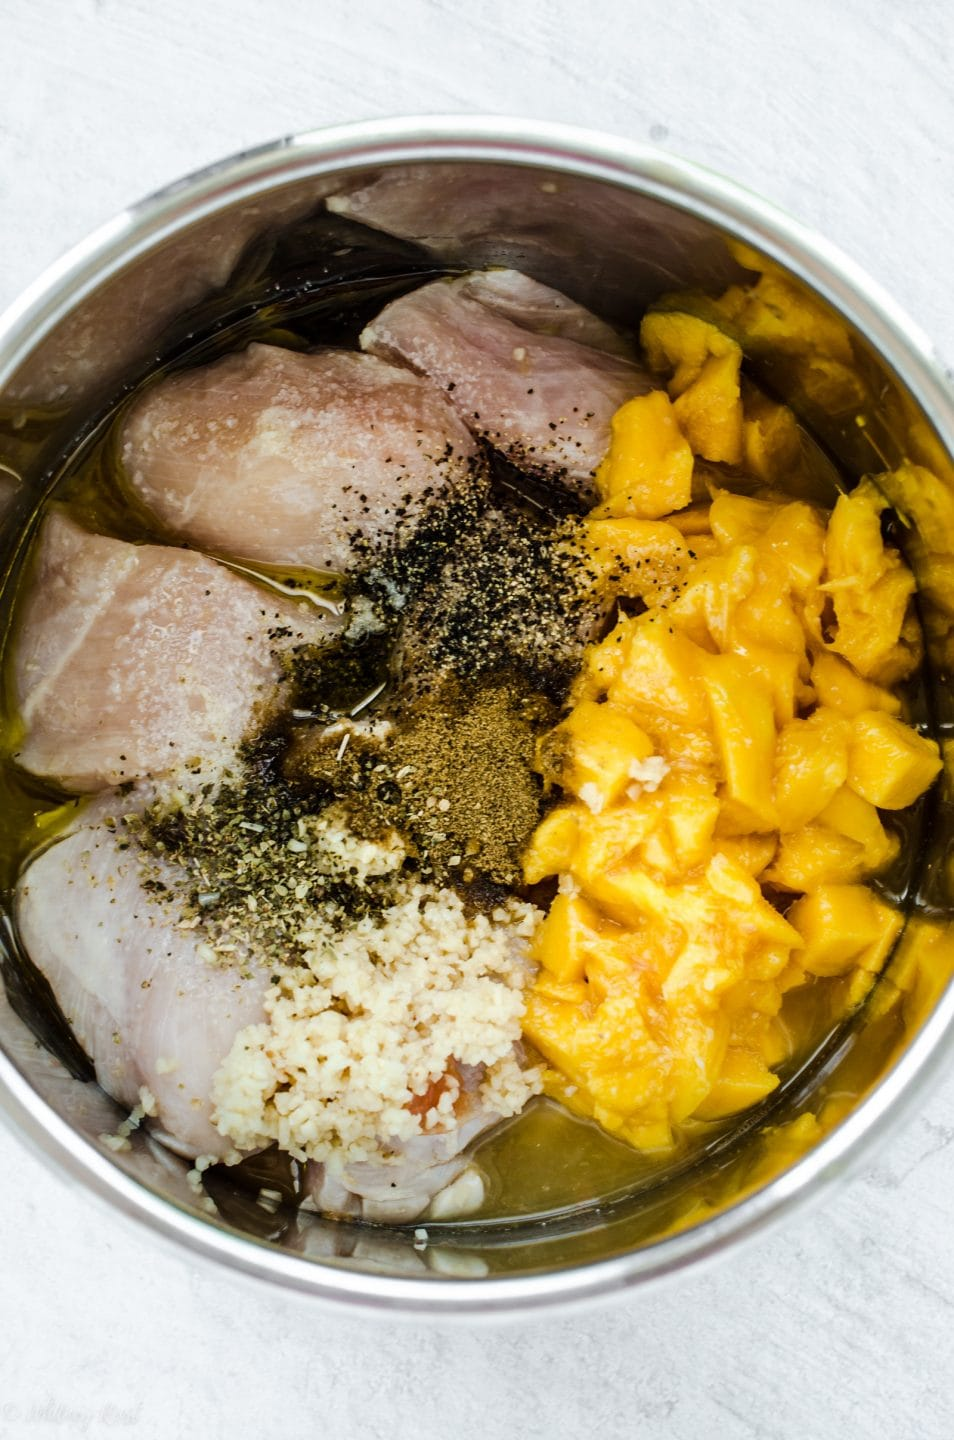 An overhead shot of the inside of an Instant Pot with uncooked chicken breasts, diced mangoes, garlic, and spices.